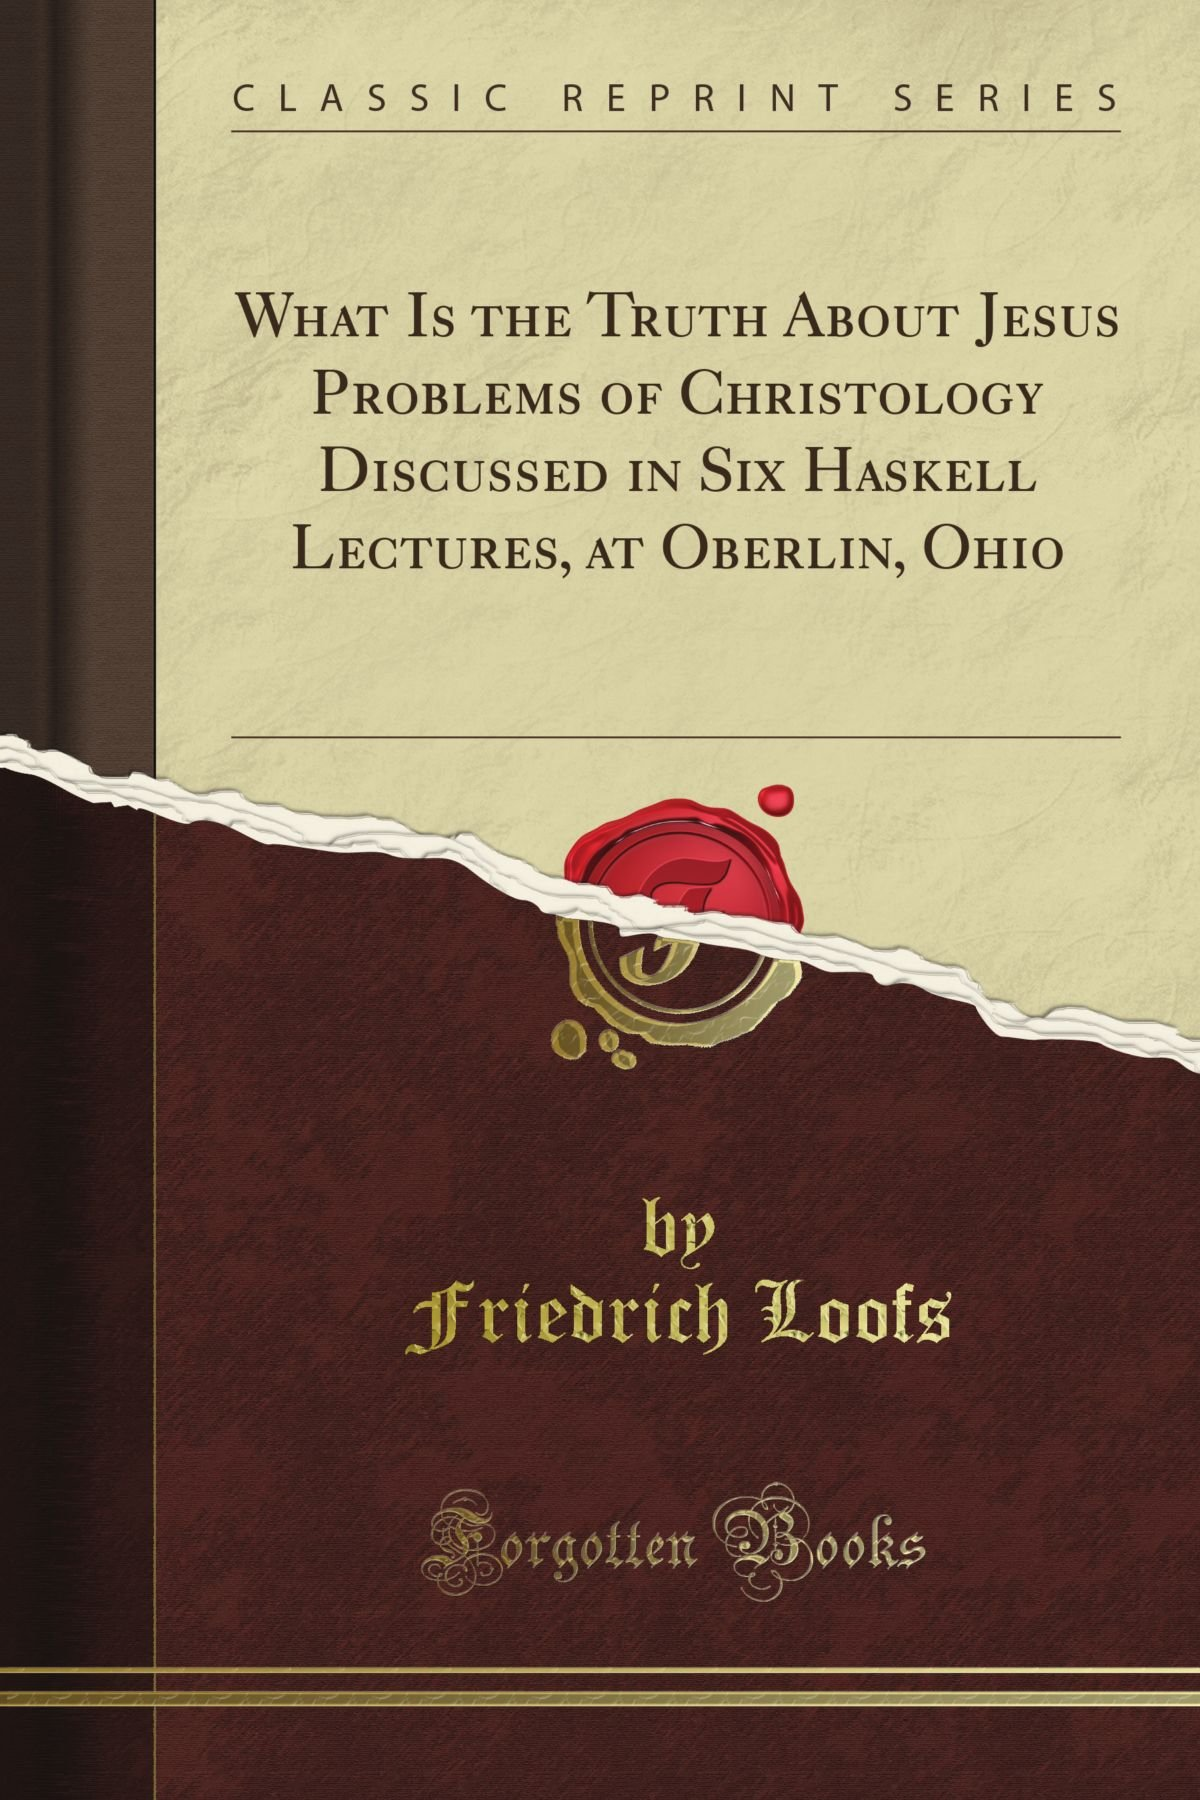 What Is the Truth About Jesus Problems of Christology Discussed in Six Haskell Lectures, at Oberlin, Ohio (Classic Reprint) ebook